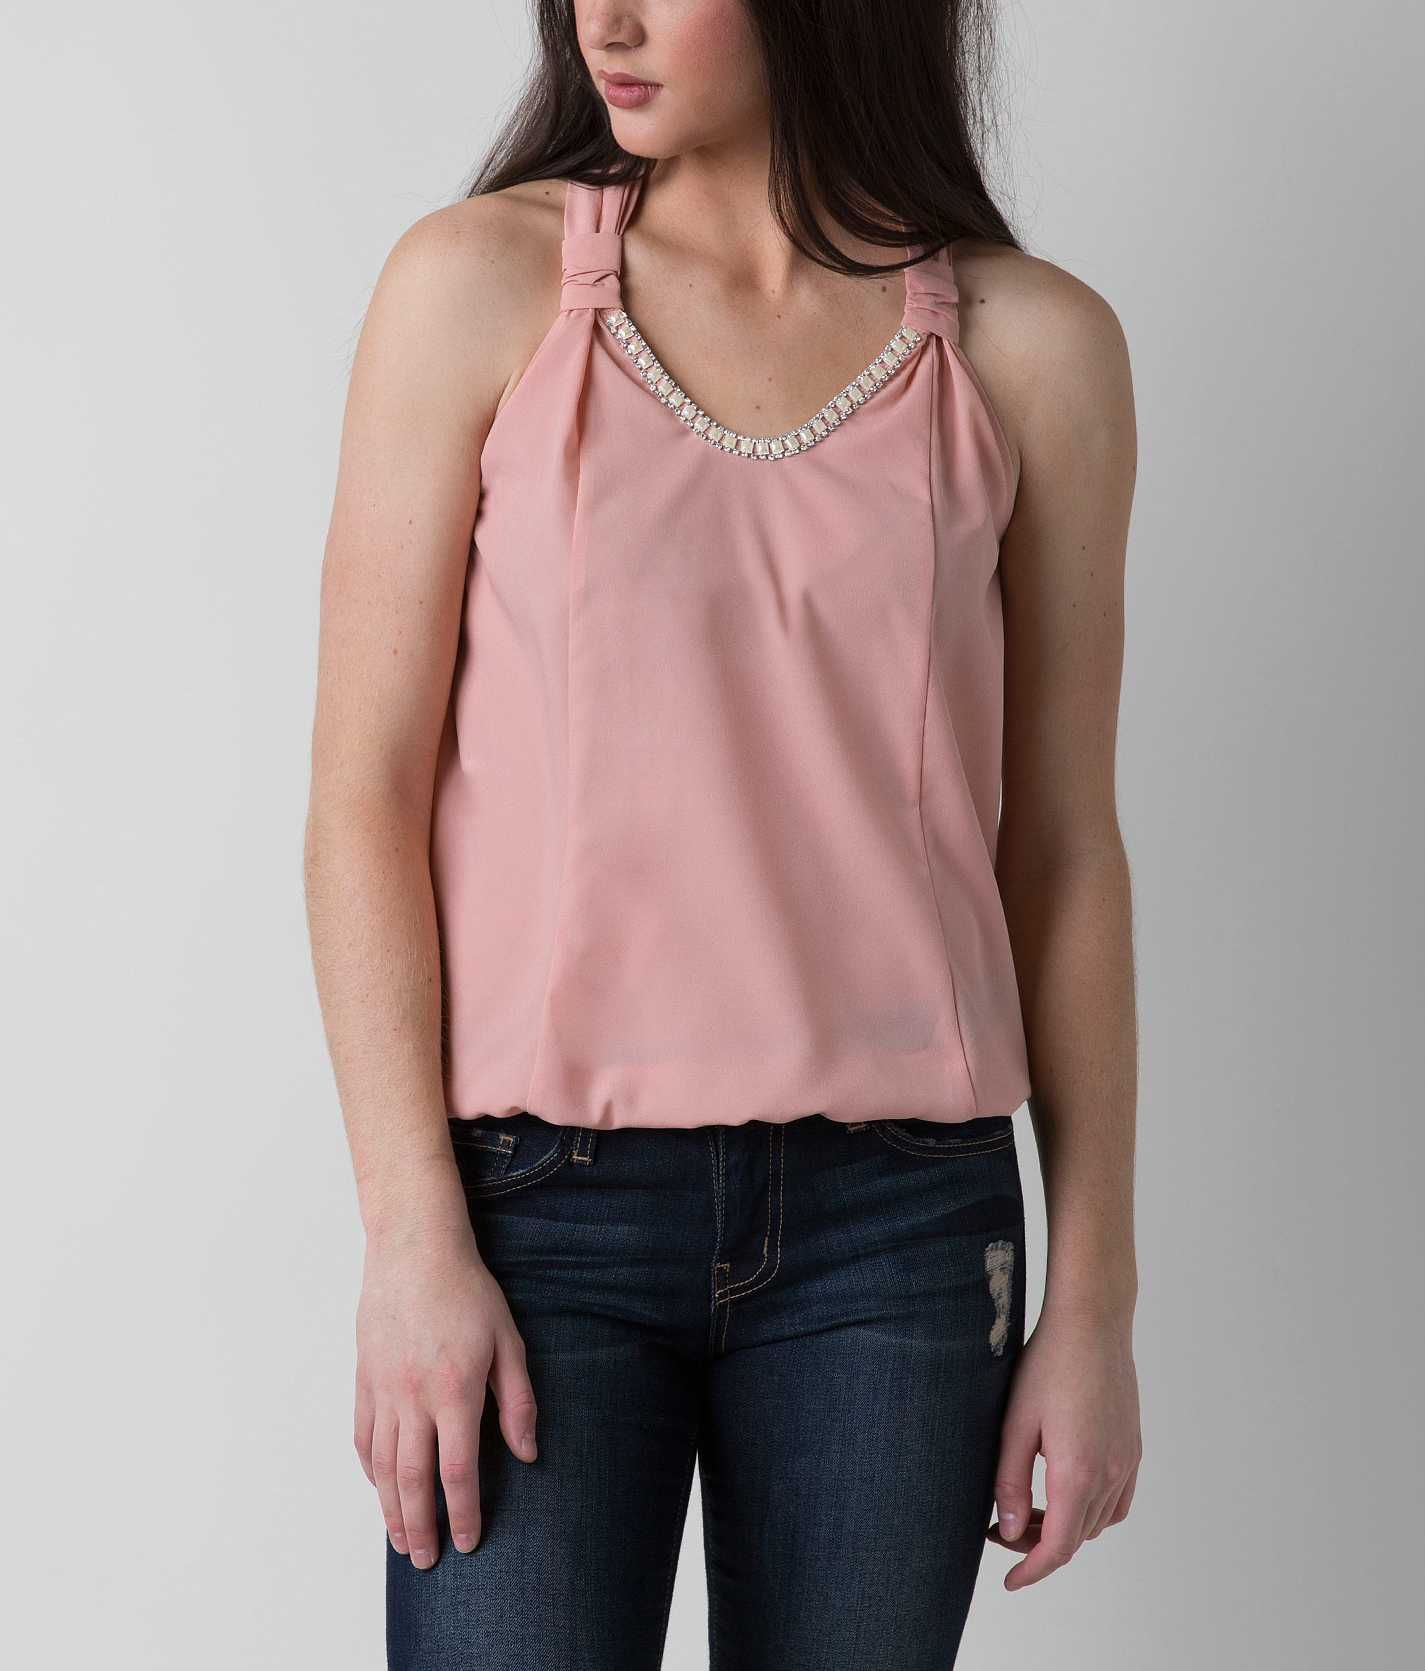 86cdf3430da4b4 Daytrip Embellished Tank Top - Women s Tank Tops in Peach